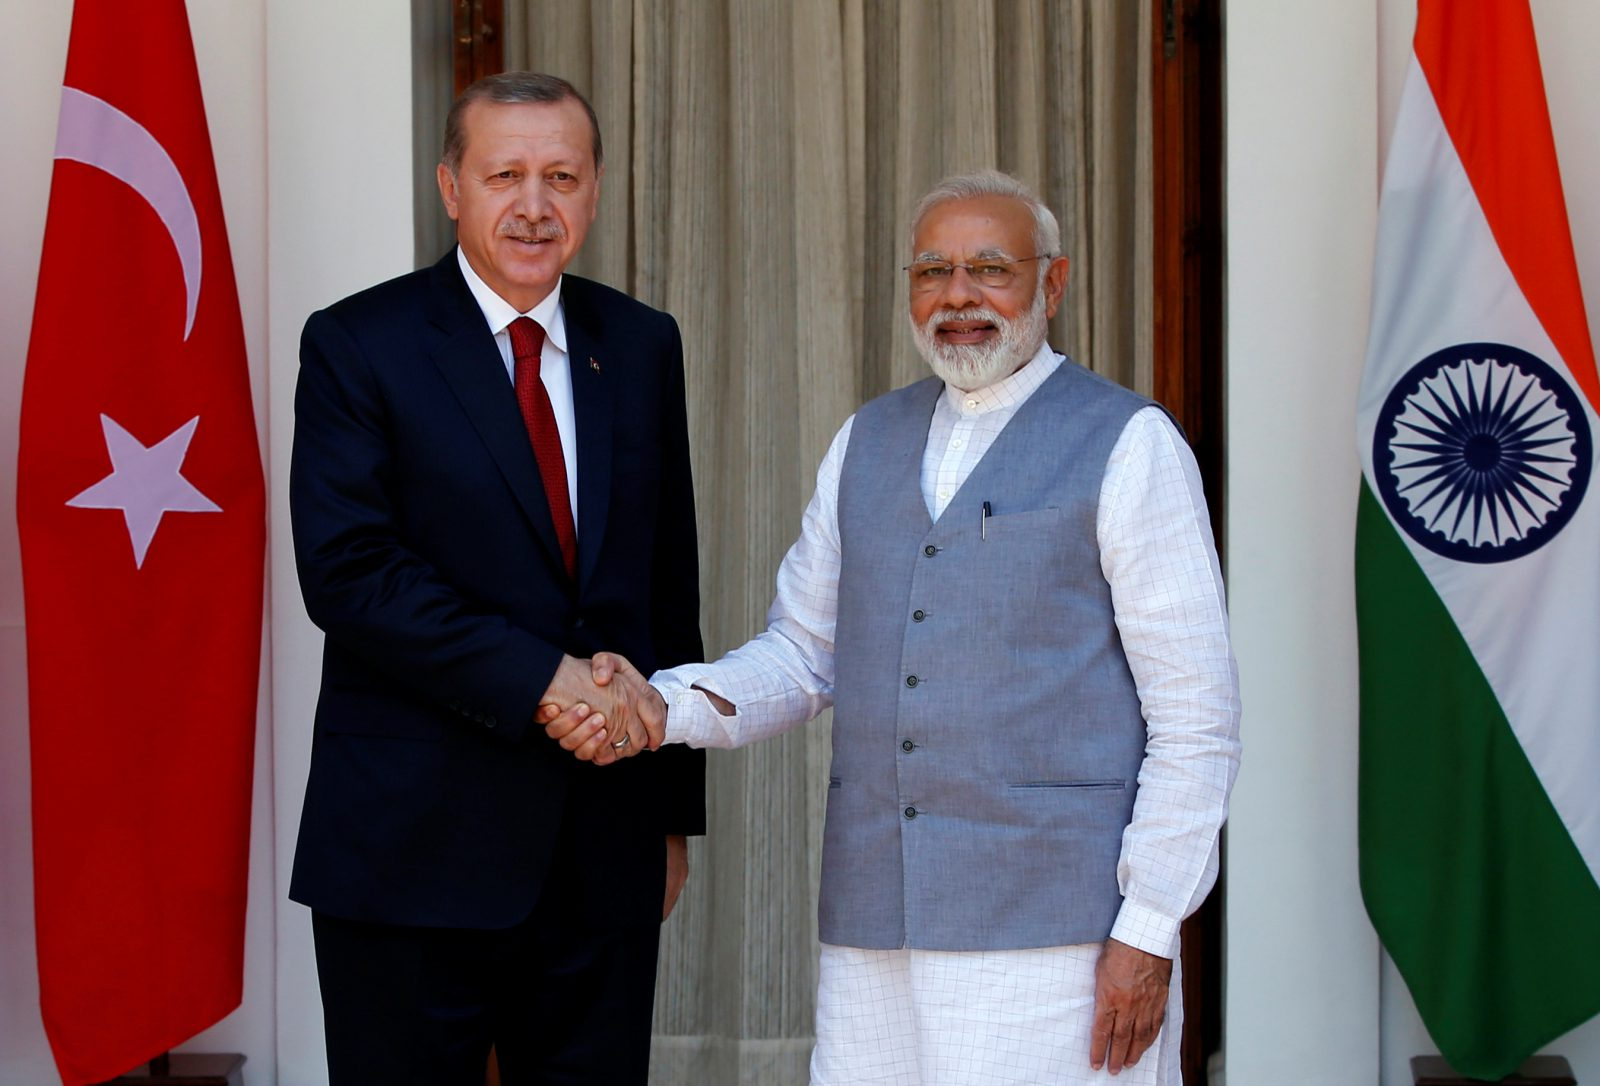 Turkish President Tayyip Erdogan (L) shakes hands with India's Prime Minister Narendra Modi during a photo opportunity ahead of their meeting at Hyderabad House in New Delhi, India, May 1, 2017.